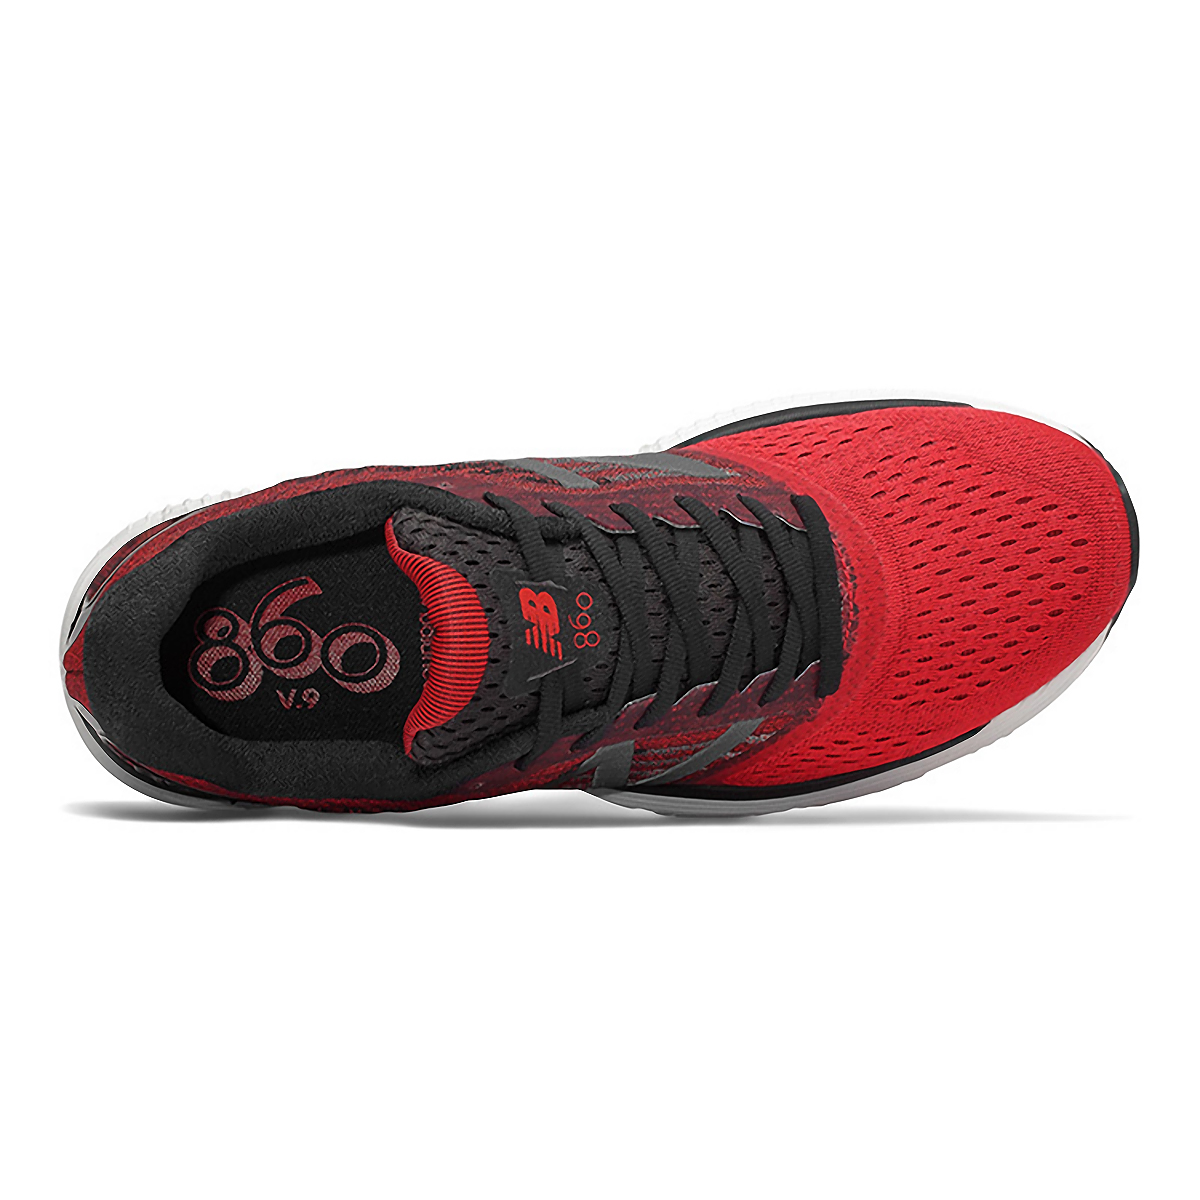 Men's New Balance 860V9 Running Shoe - Color: Team Red - Size: 7 - Width: Wide, Team Red, large, image 3